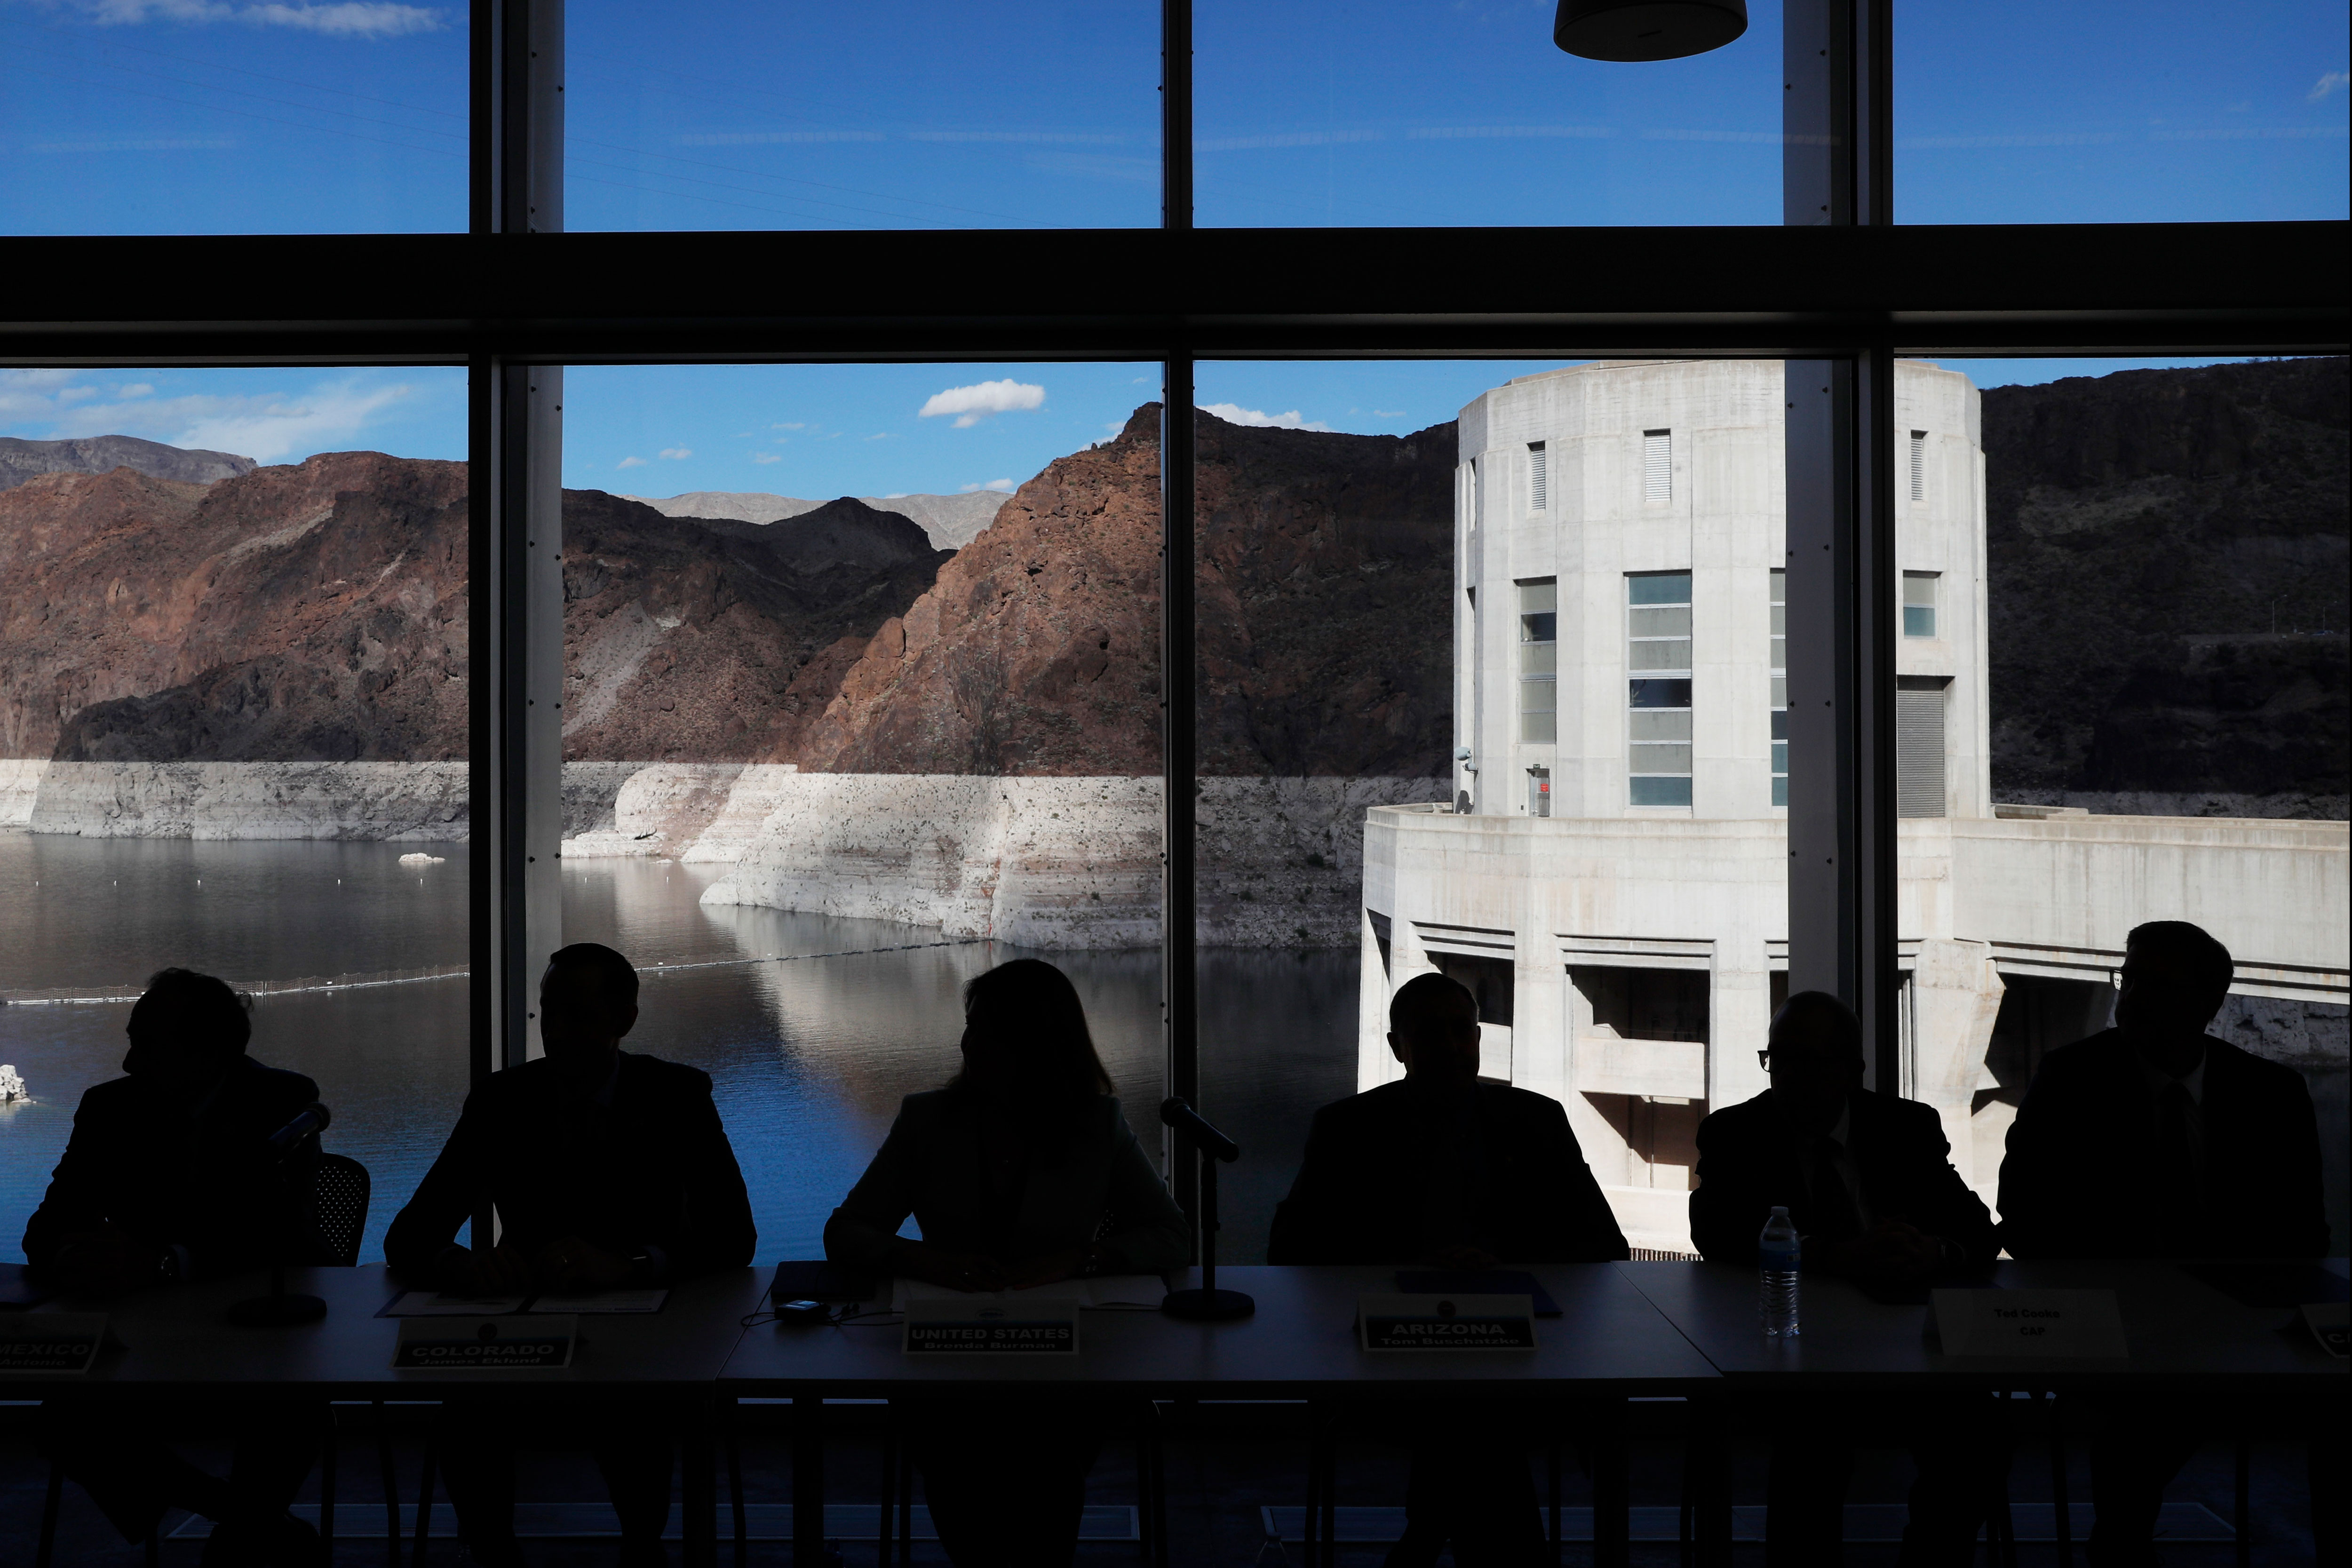 <p>Representatives from seven states and the federal government sit during a news conference at Hoover Dam before a ceremony for a Colorado River drought contingency plan, Monday, May 20, 2019, in Boulder City, Nev.</p>